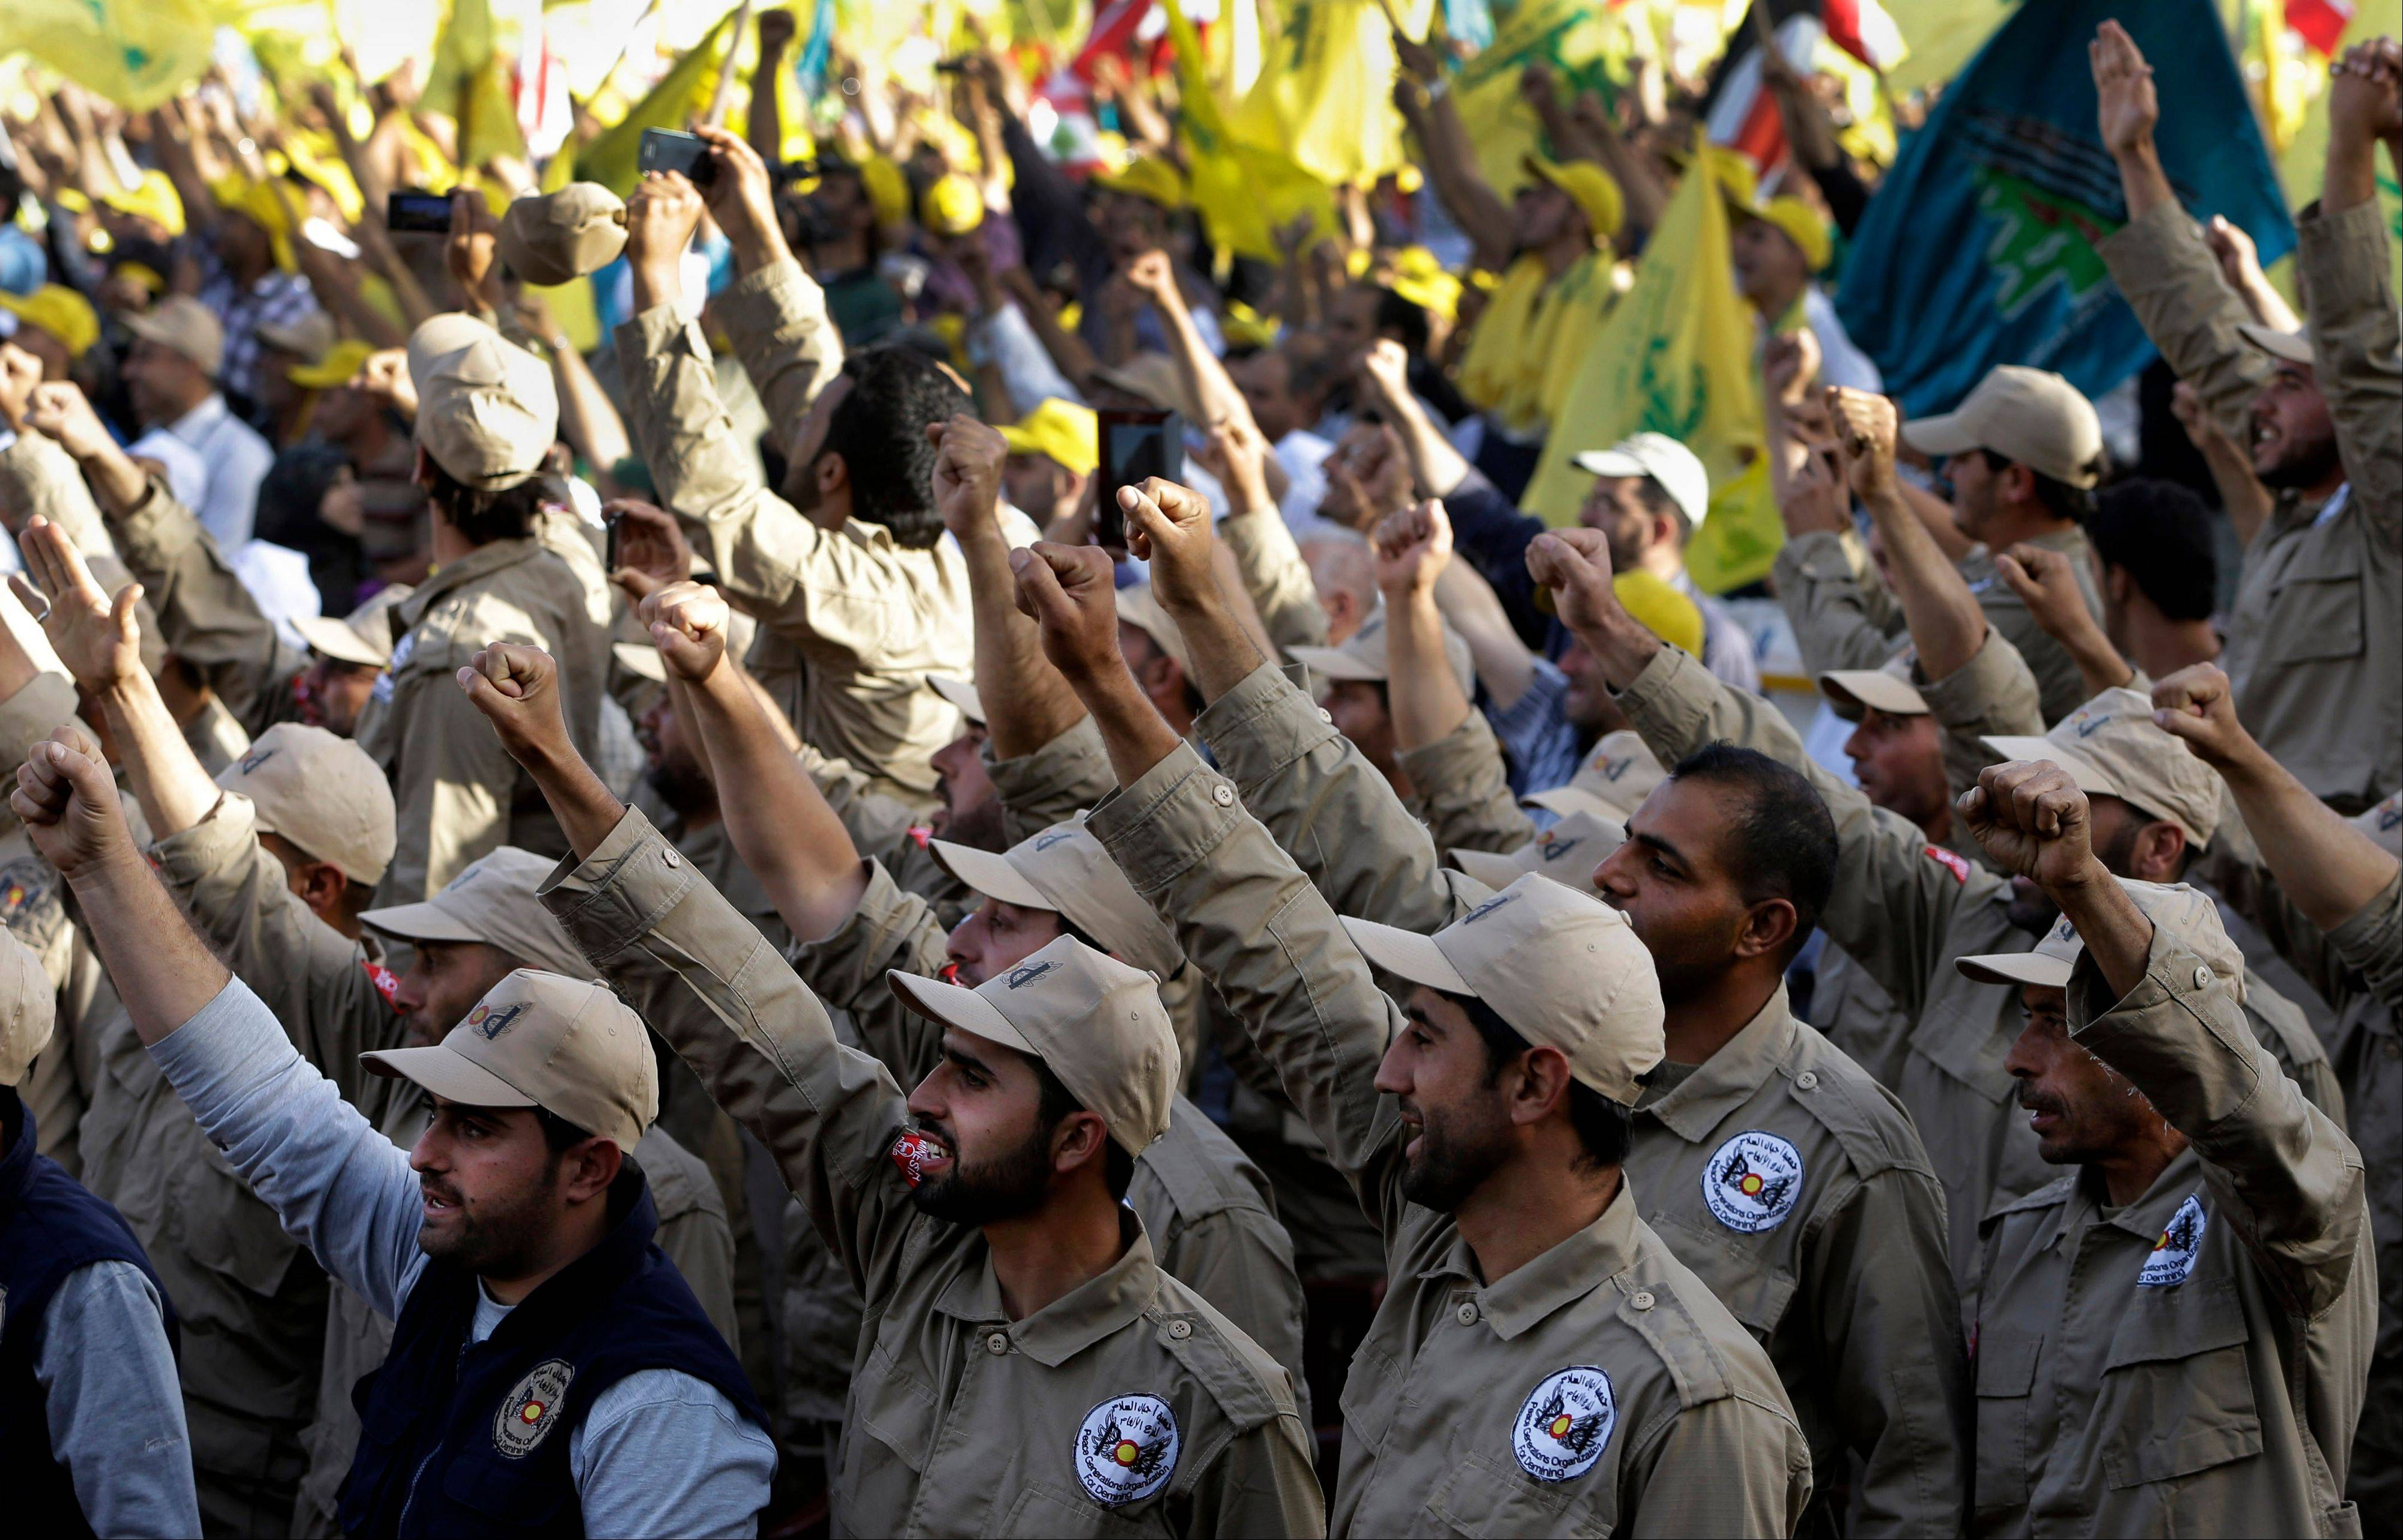 Associated Press/May 25, 2013 Members of the demining unit of Hezbollah raise up their hands as they shout slogans in support of pro-Hezbollah leader Sheik Hassan Nasrallah, during a rally commemorating �Liberation Day,� which marks the withdrawal of the Israeli army from southern Lebanon in 2000.